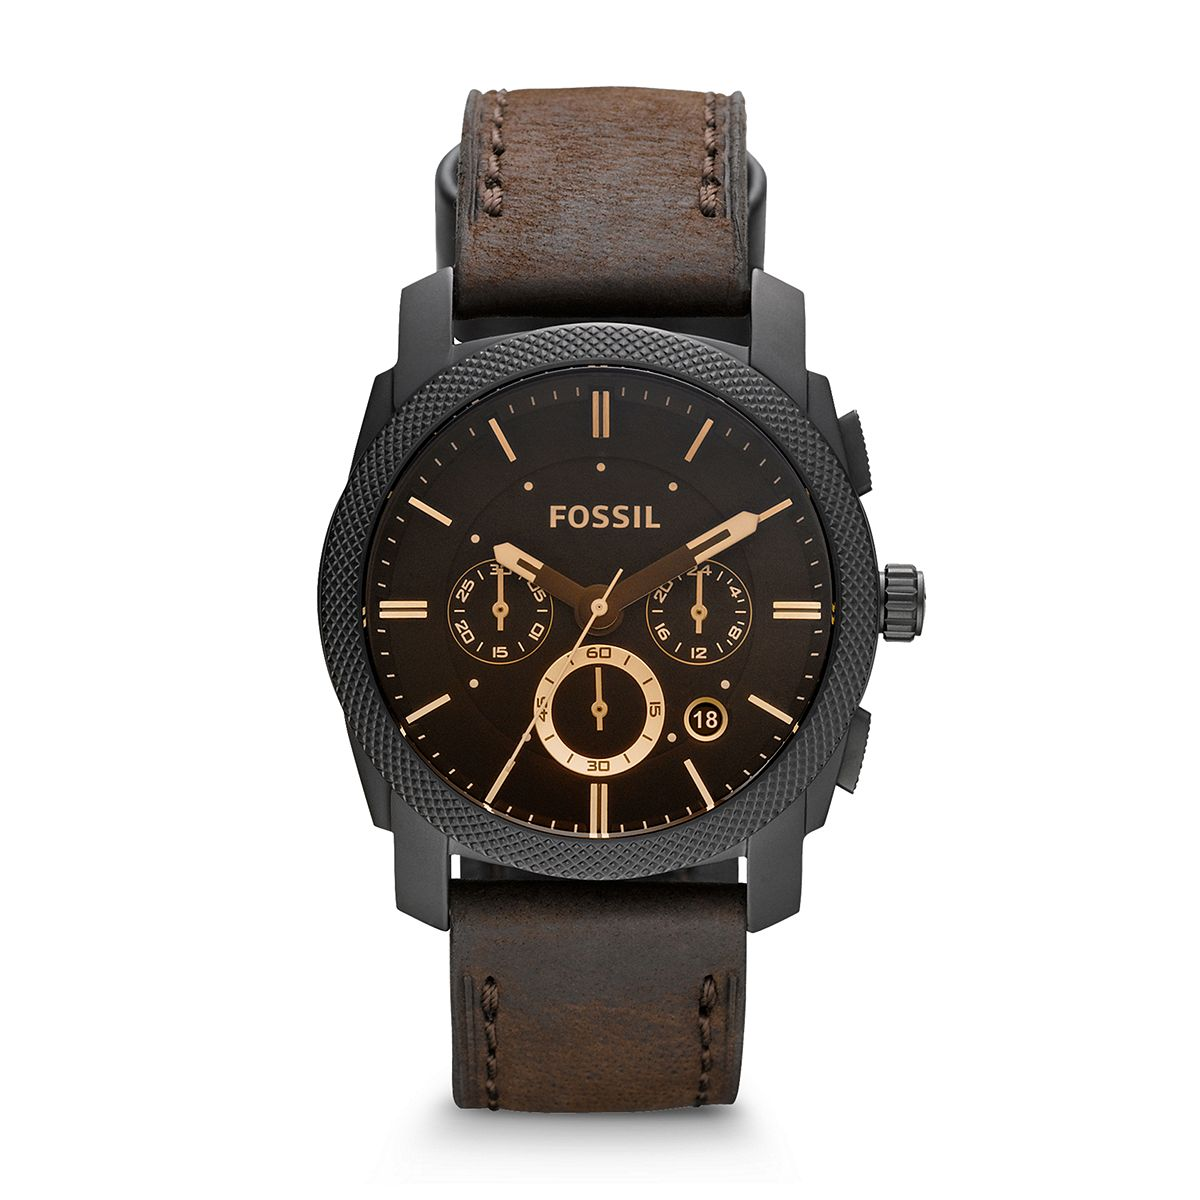 Machine Men's Brown Leather Strap Watch   / Promotional product